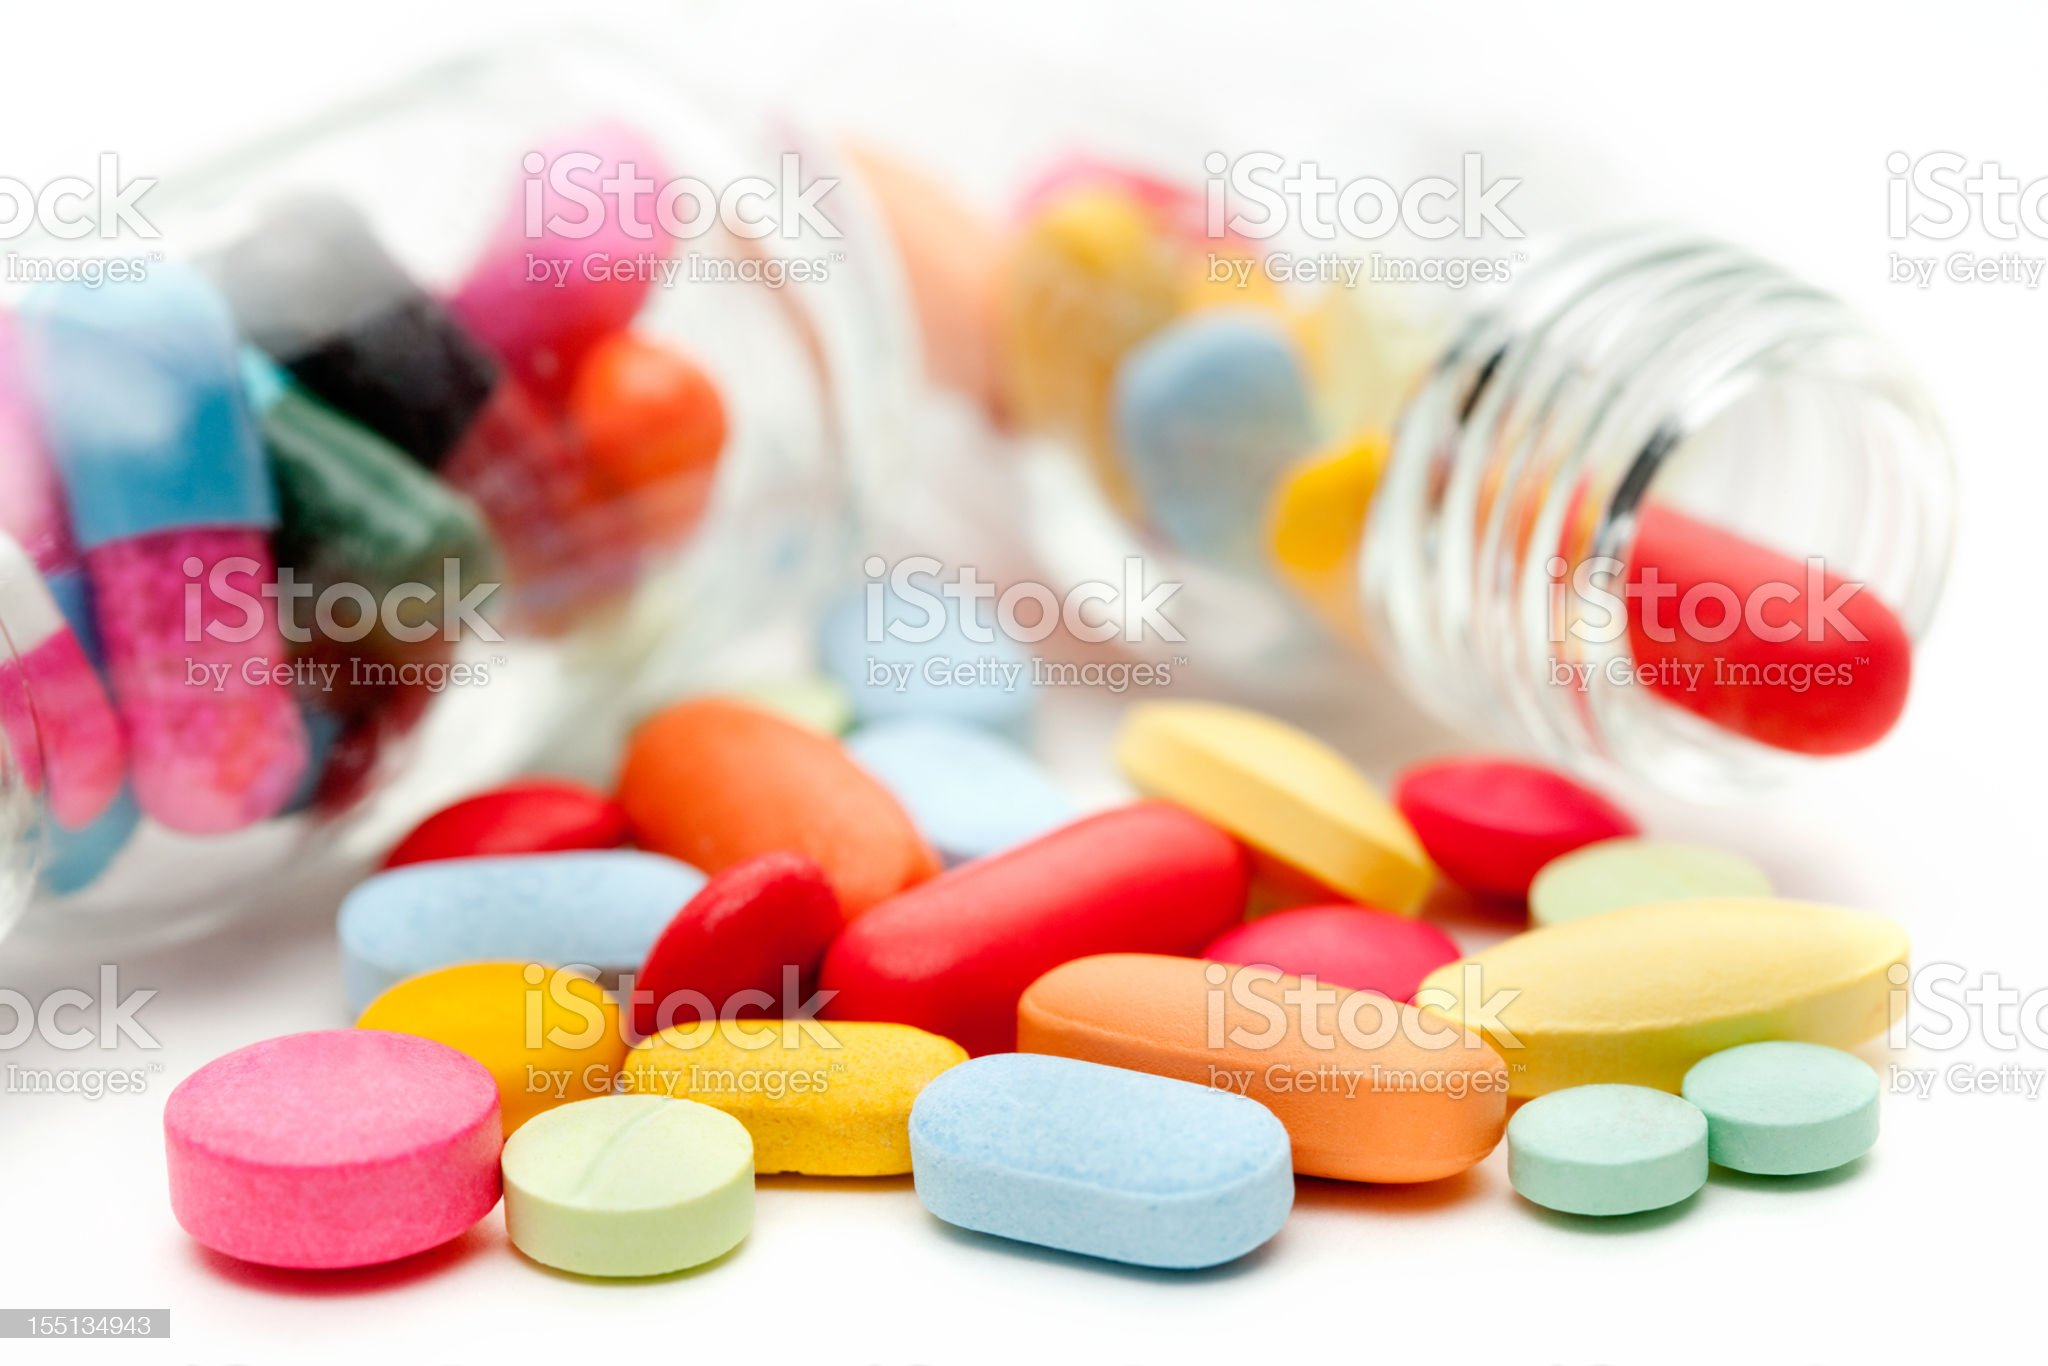 Medicine Pills In Small Glass Bottles royalty-free stock photo